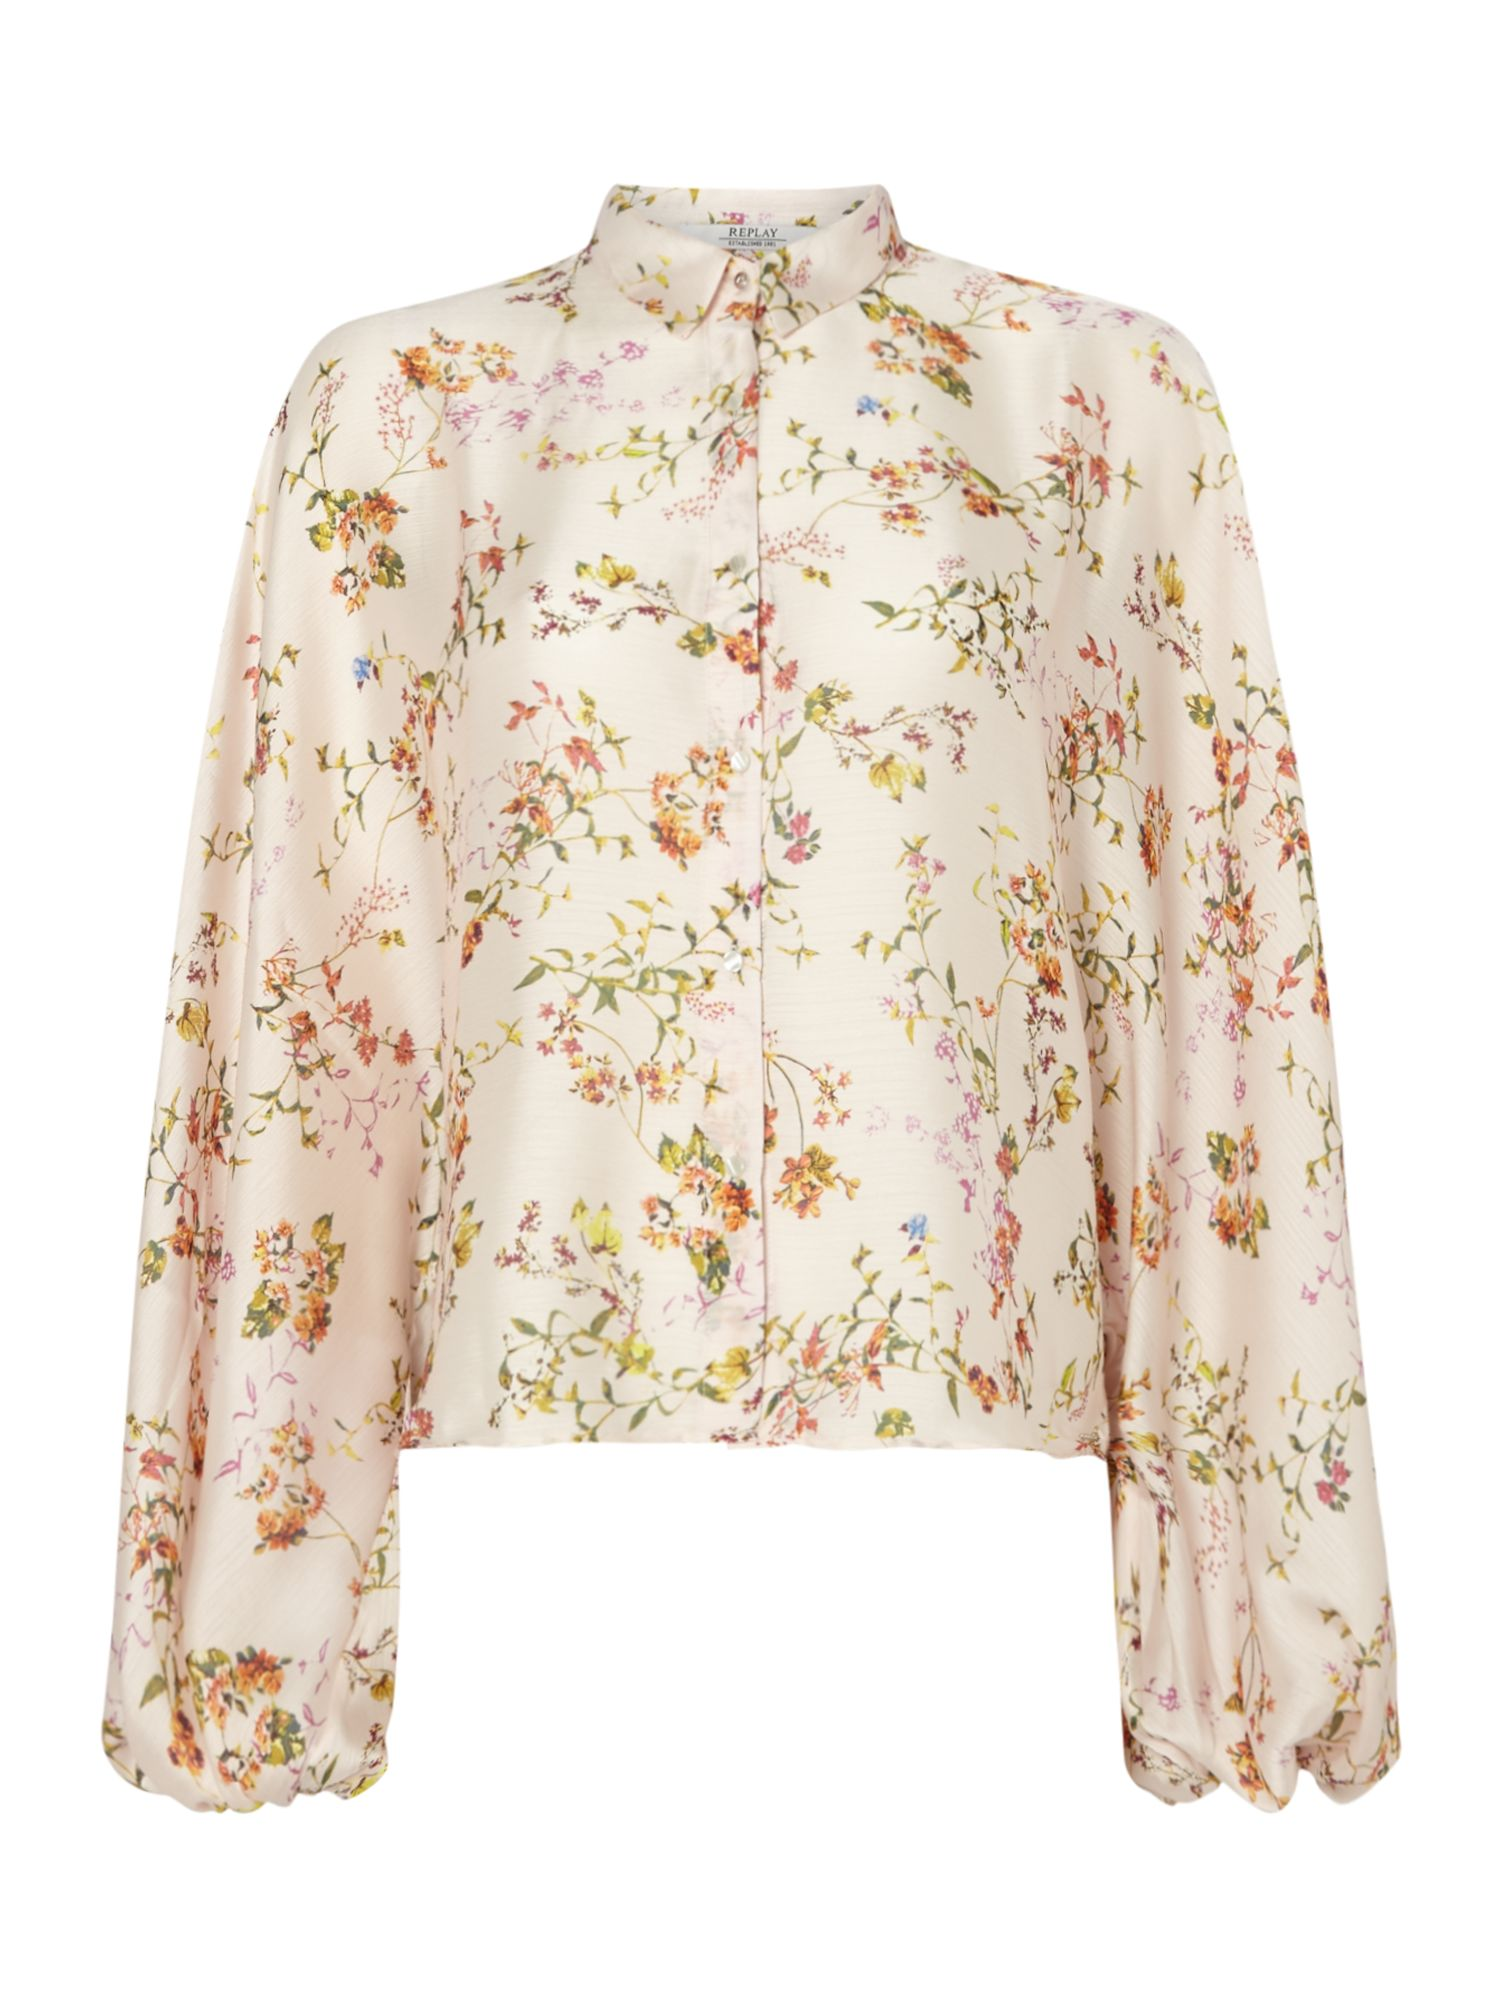 Replay Floral Shirt With Classic Collar, Multi-Pastel